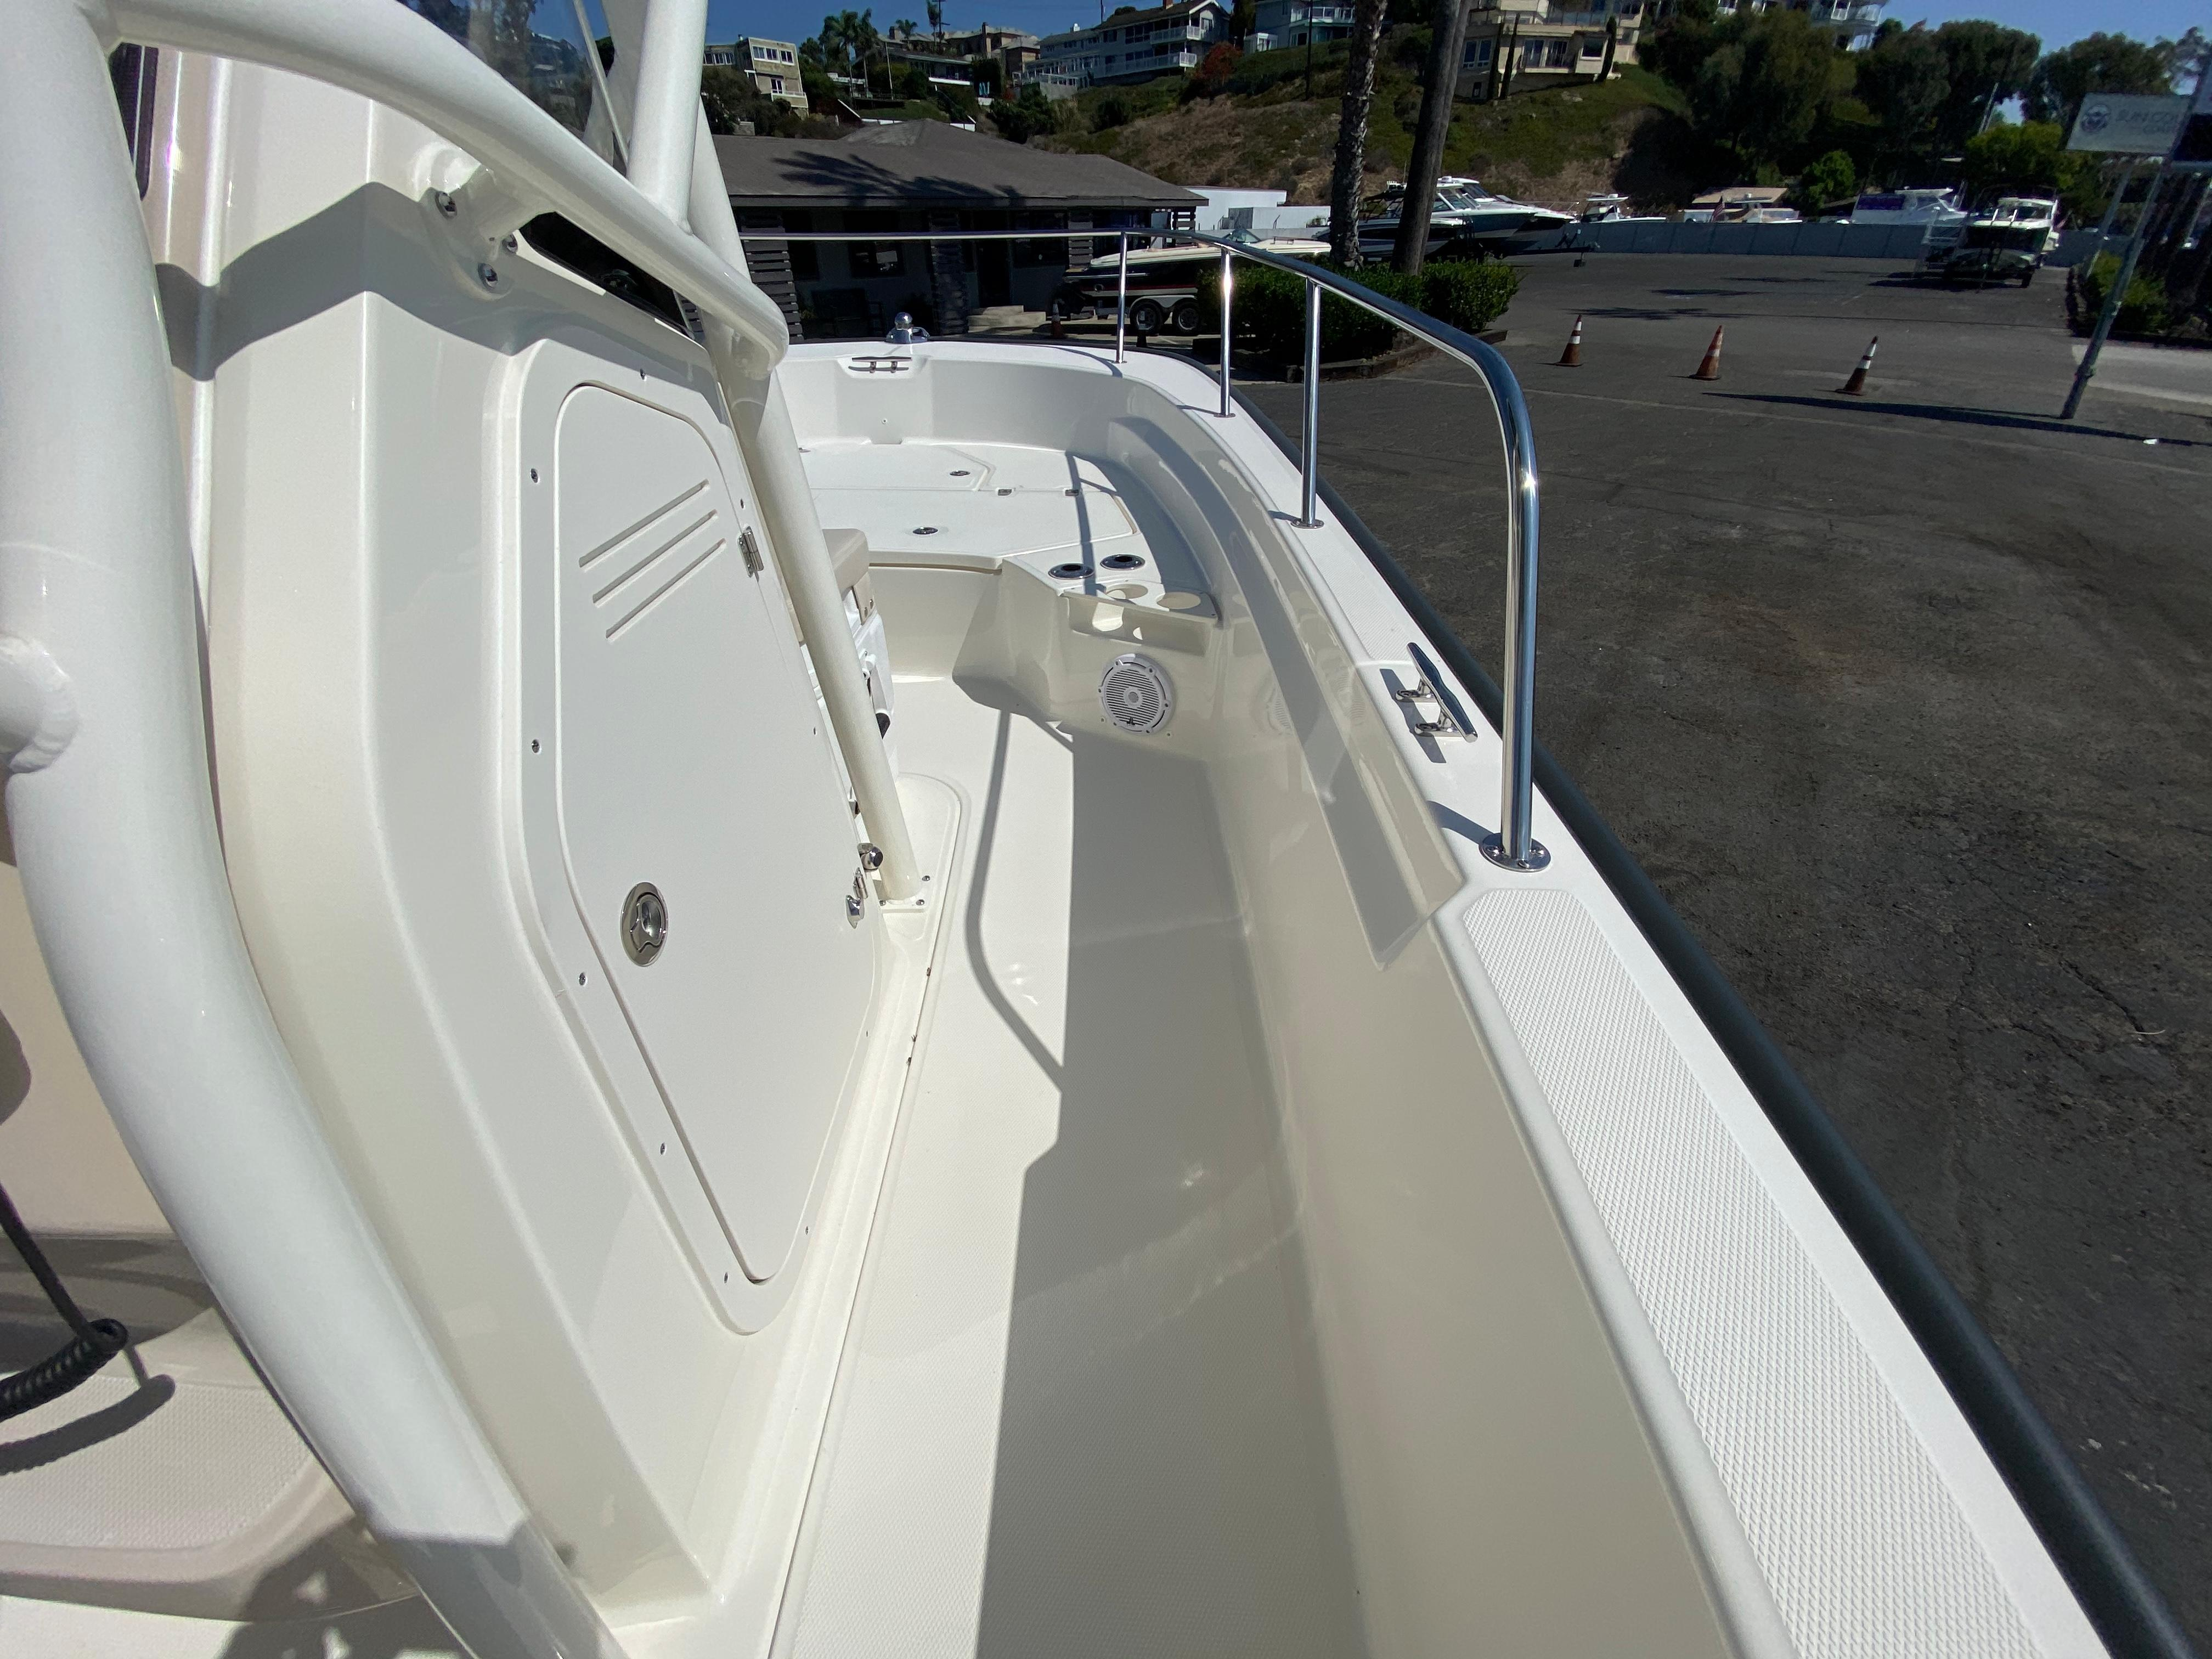 2021 Boston Whaler 210 Montauk #BW0632G inventory image at Sun Country Inland in Irvine